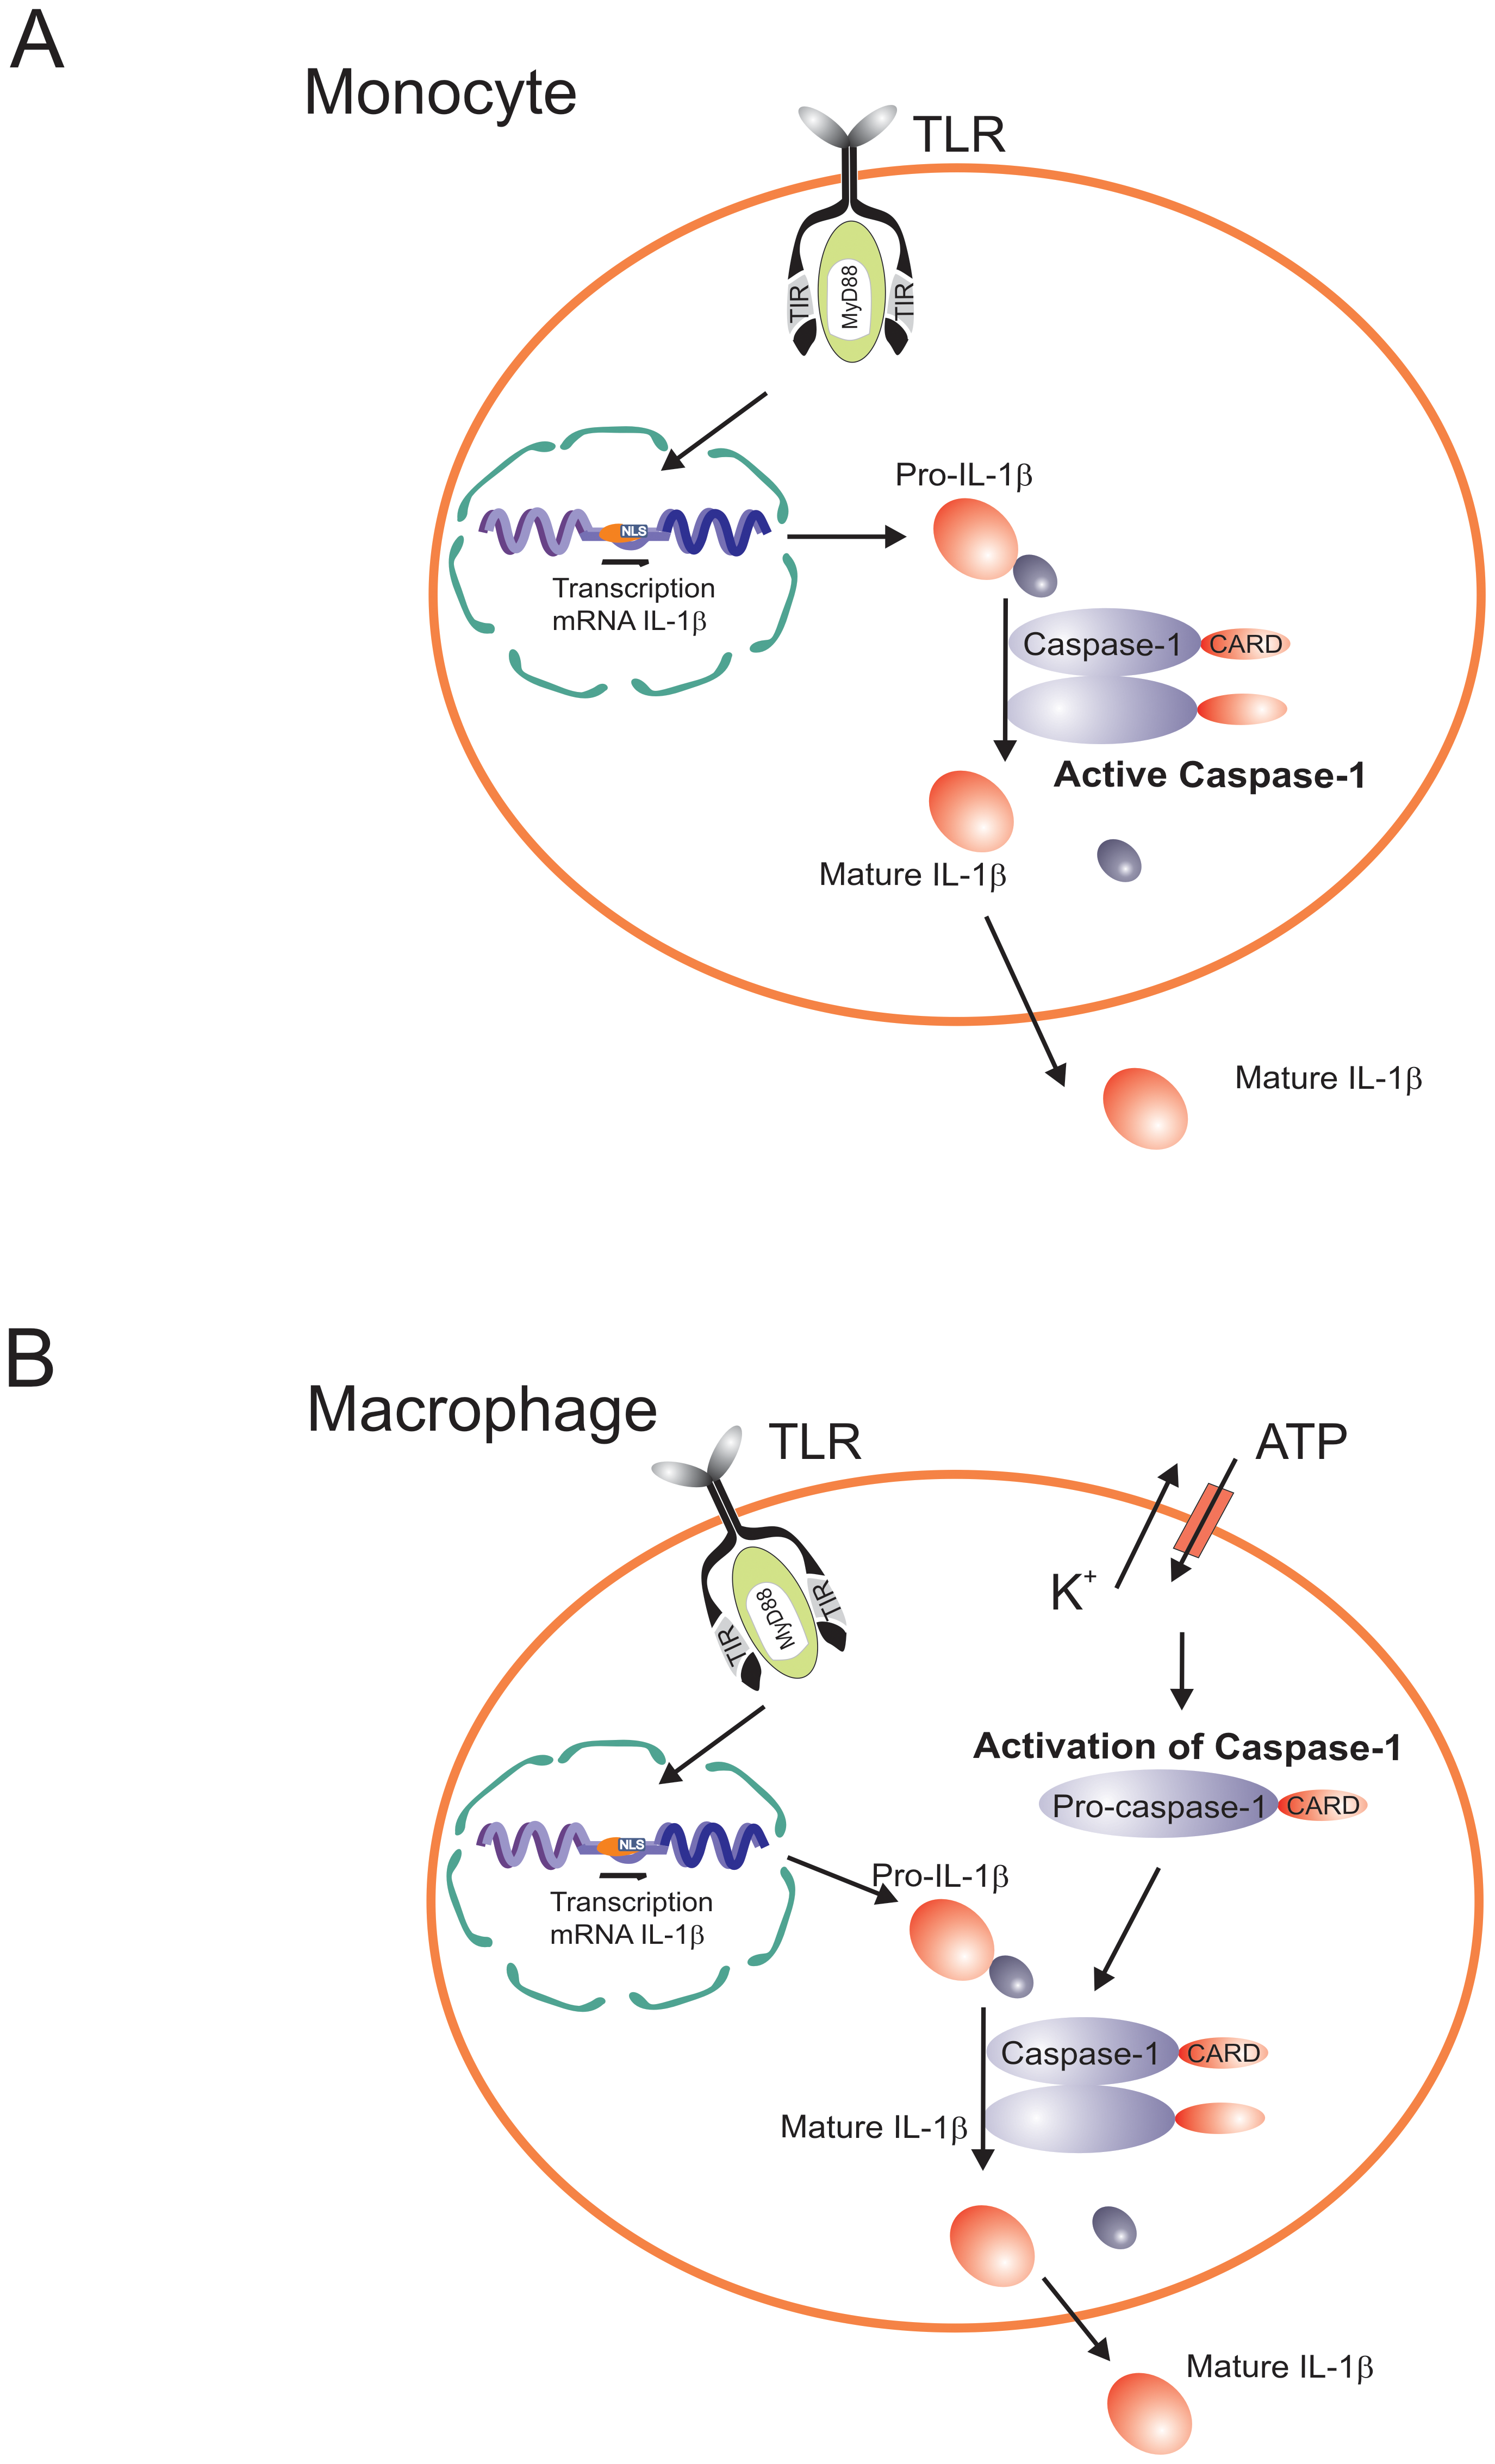 Diagram representing the differential caspase-1/IL-1β activation pathways in monocytes and macrophages.